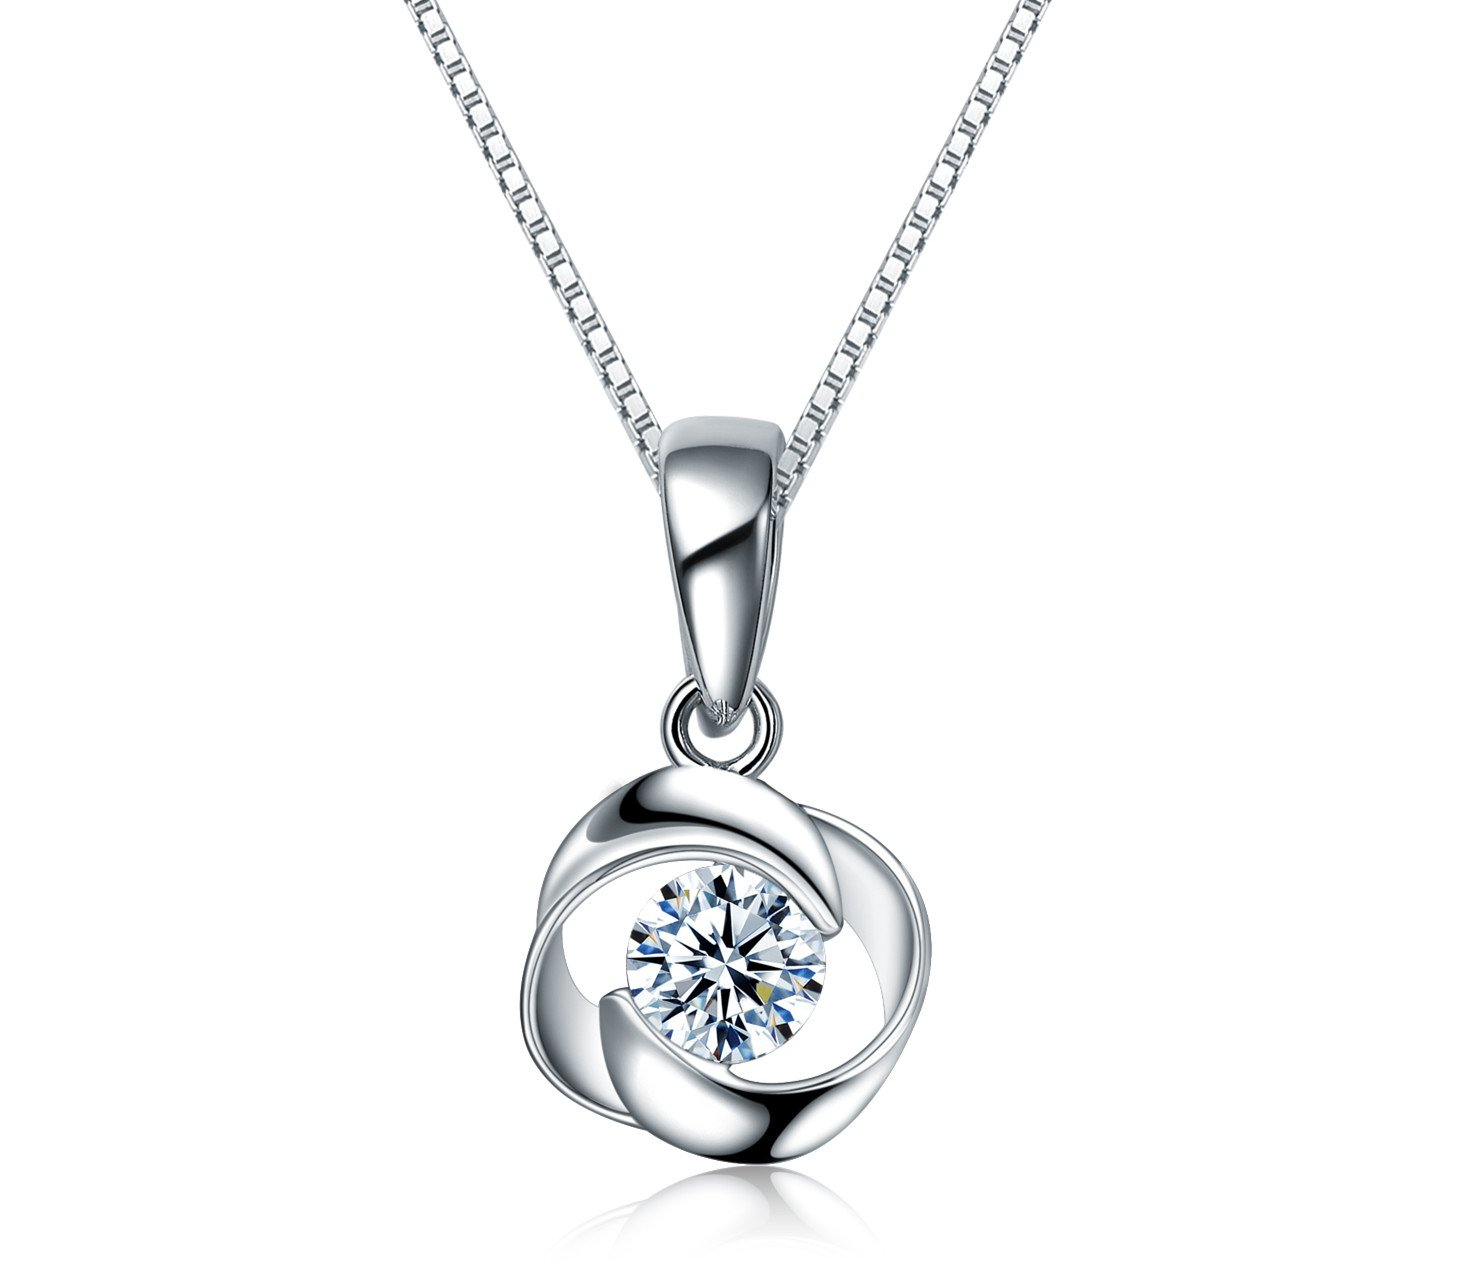 {sassu fine}Rose Pendant Necklace Swarovski Zircon Jewelry for Women Girls Ideal Christmas Gifts Birthday Gifts for Daughter Granddaughter Girlfriend Mother Wife (Necklace) (Necklace)